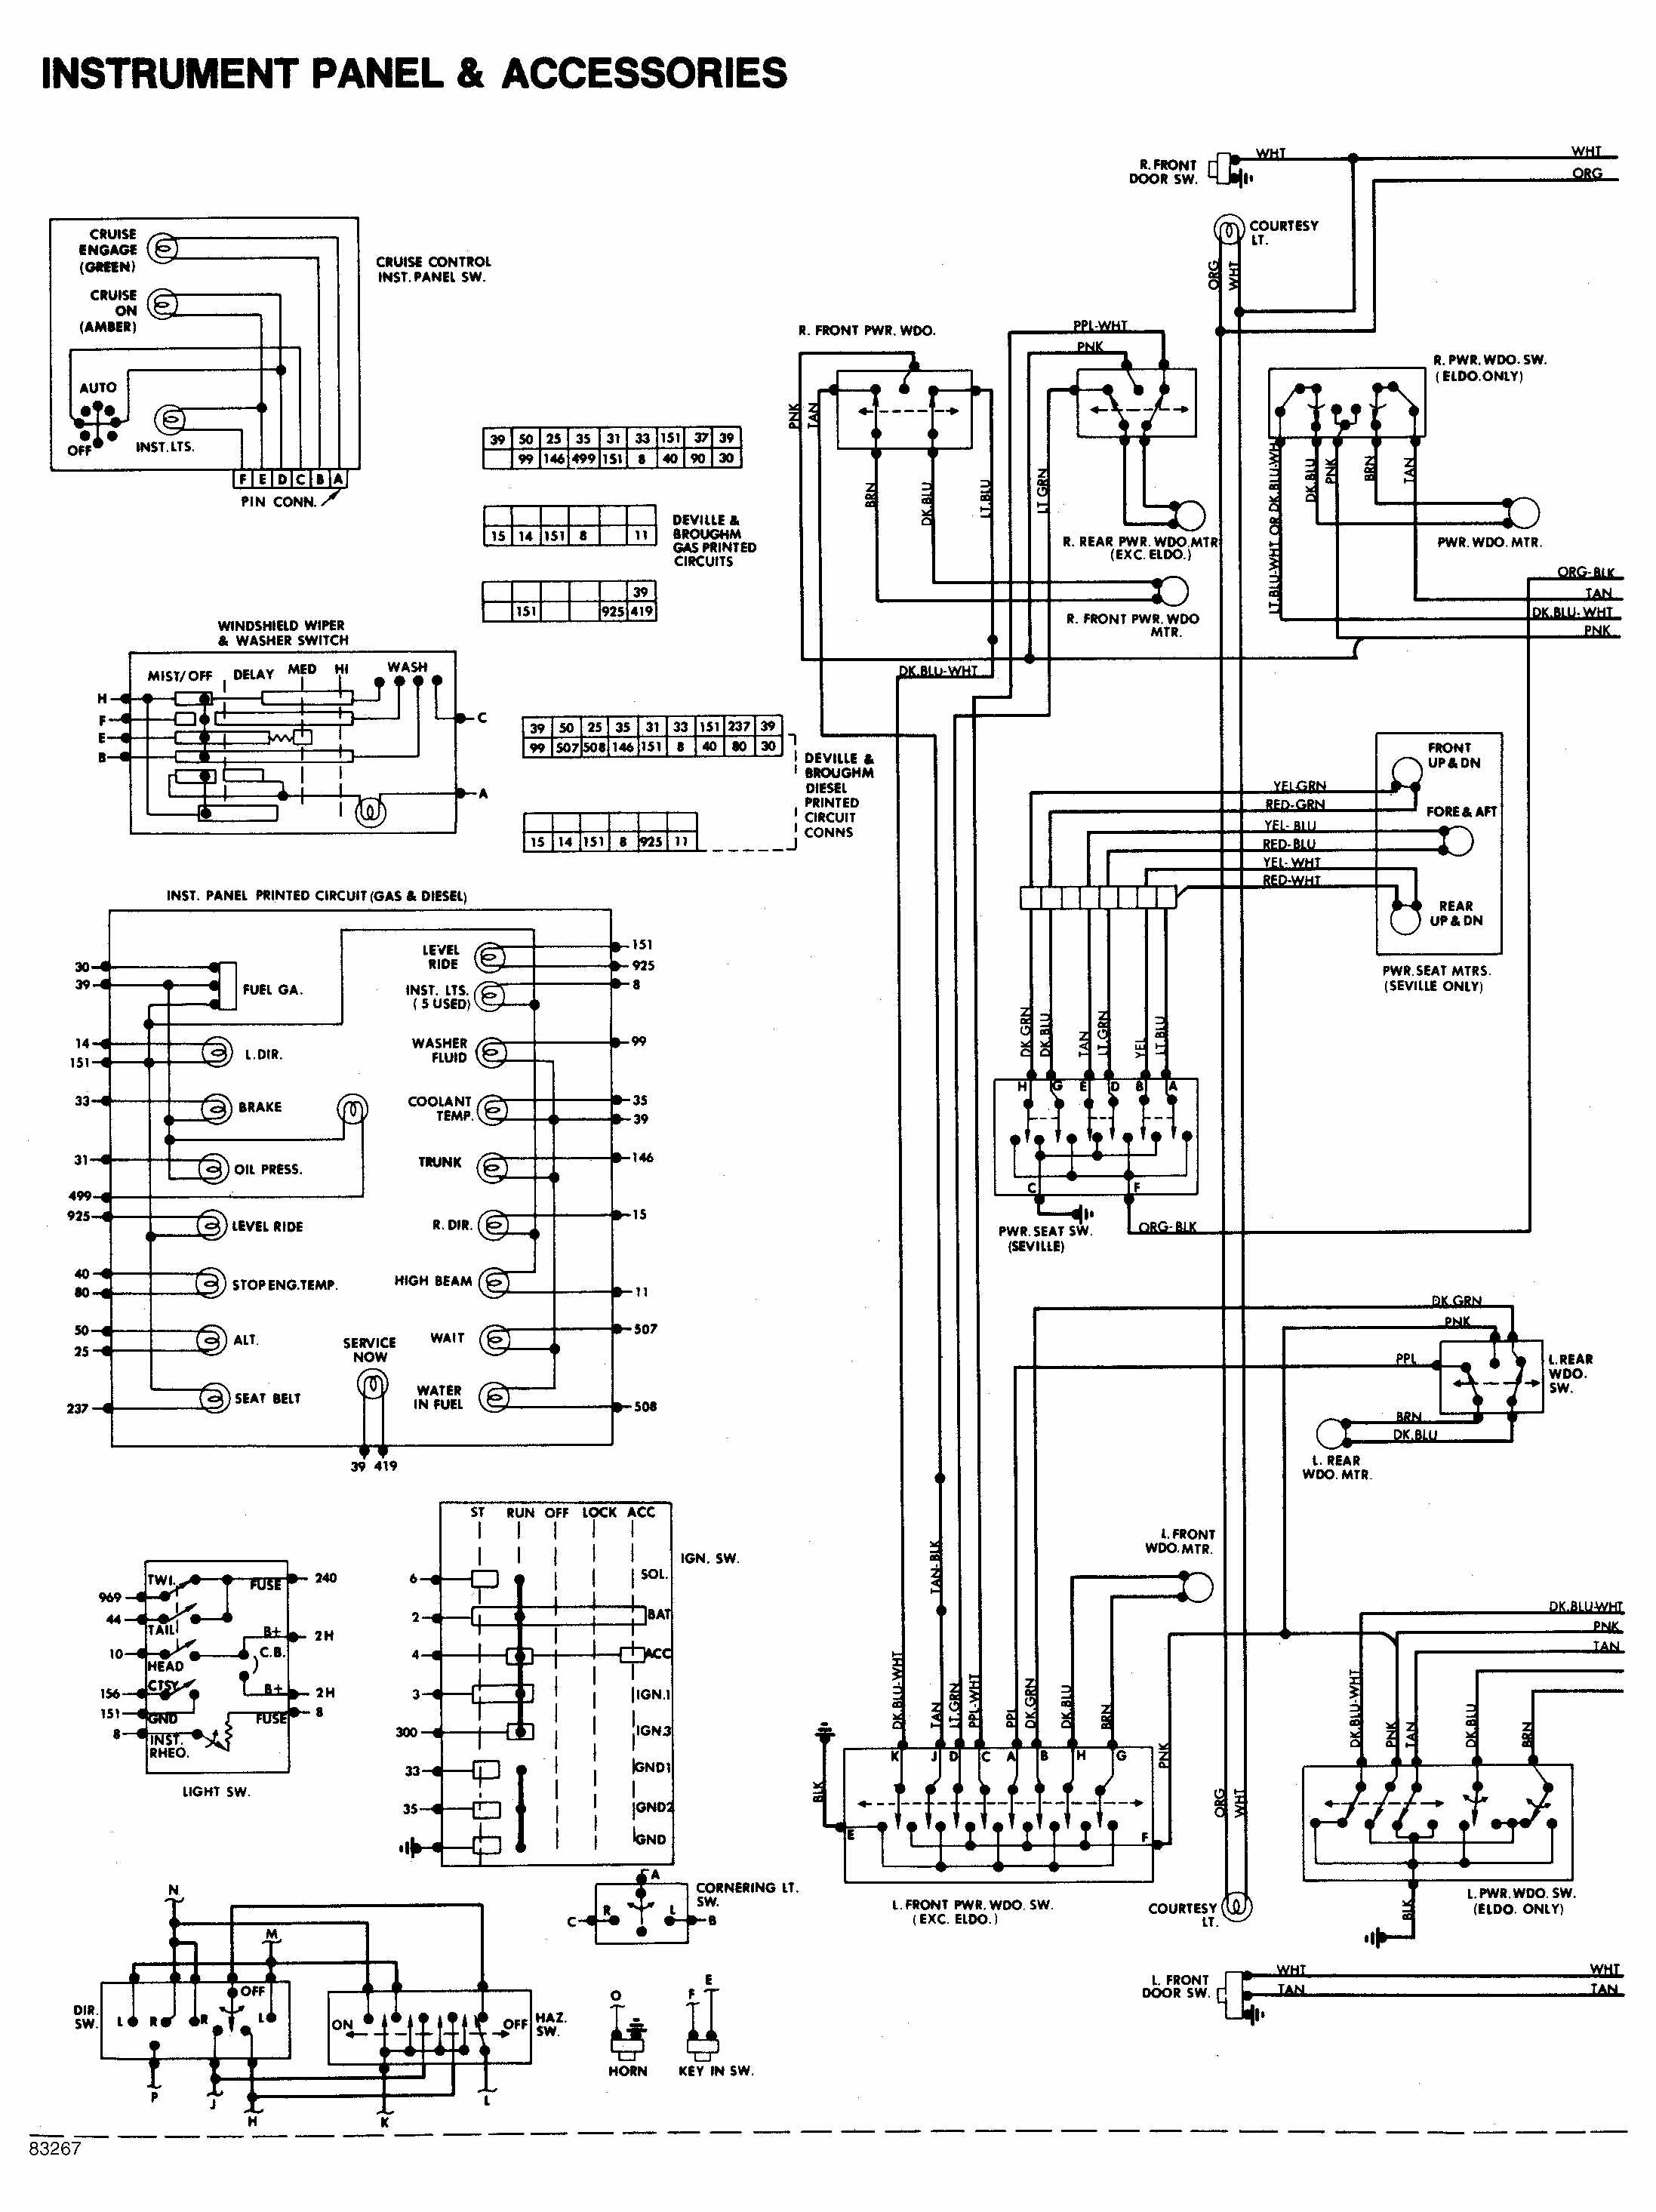 71 cougar wiring diagram wiring diagram1969 cougar fuse box diagram wiring diagram ebook